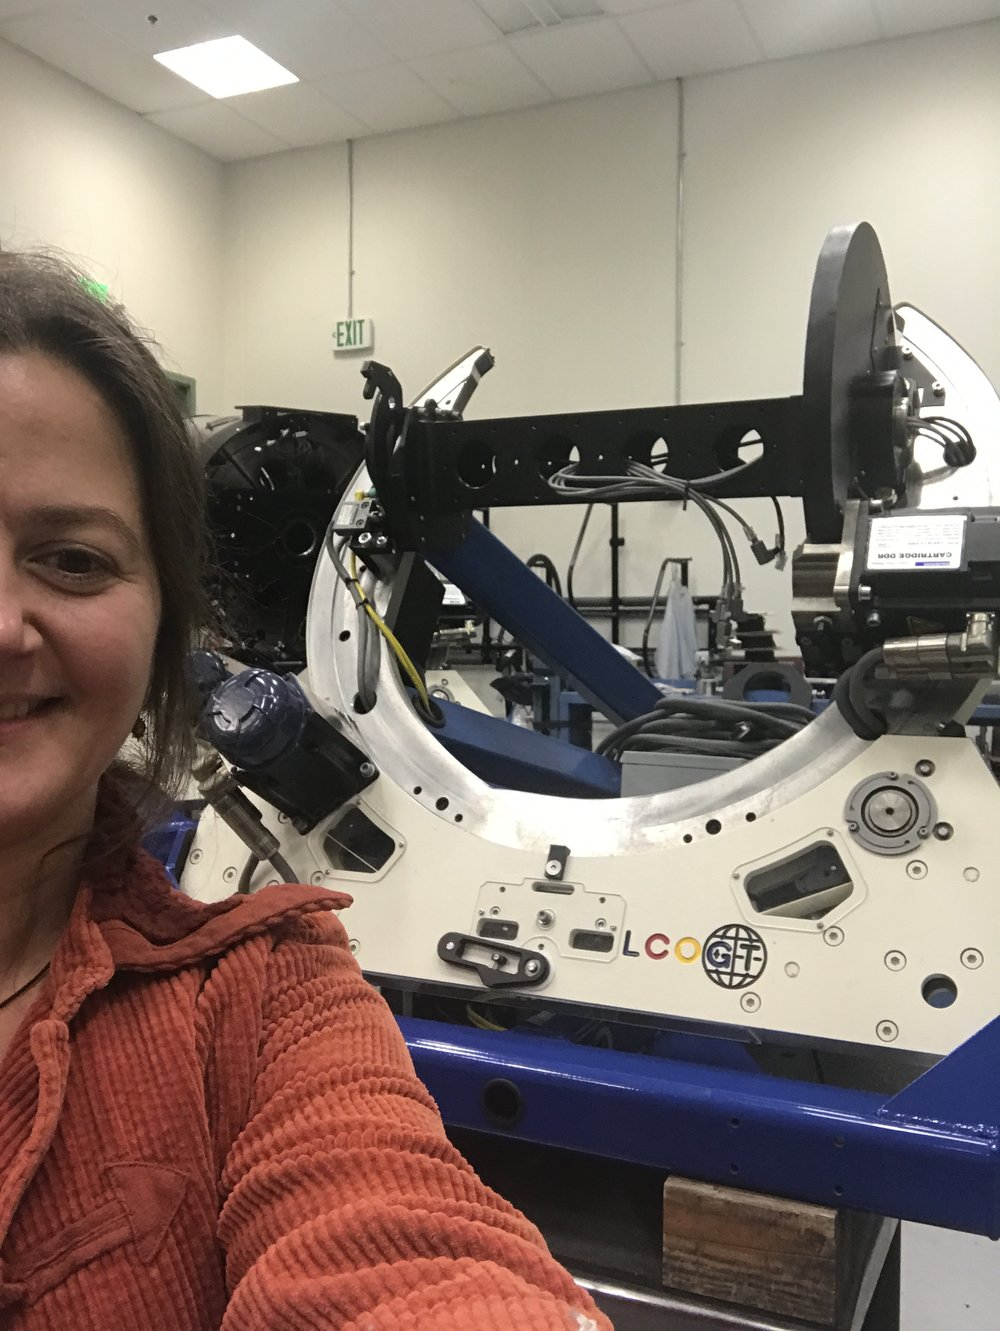 In December Tabby visited the Las Cumbres Observatory (LCO) headquarters in Santa Barbara. When she was there she got a tour of the facility where they build both the telescopes and instrumentation for the robotic network. This shot shows the telescope mount for one of the telescopes that will be deployed over the next year.